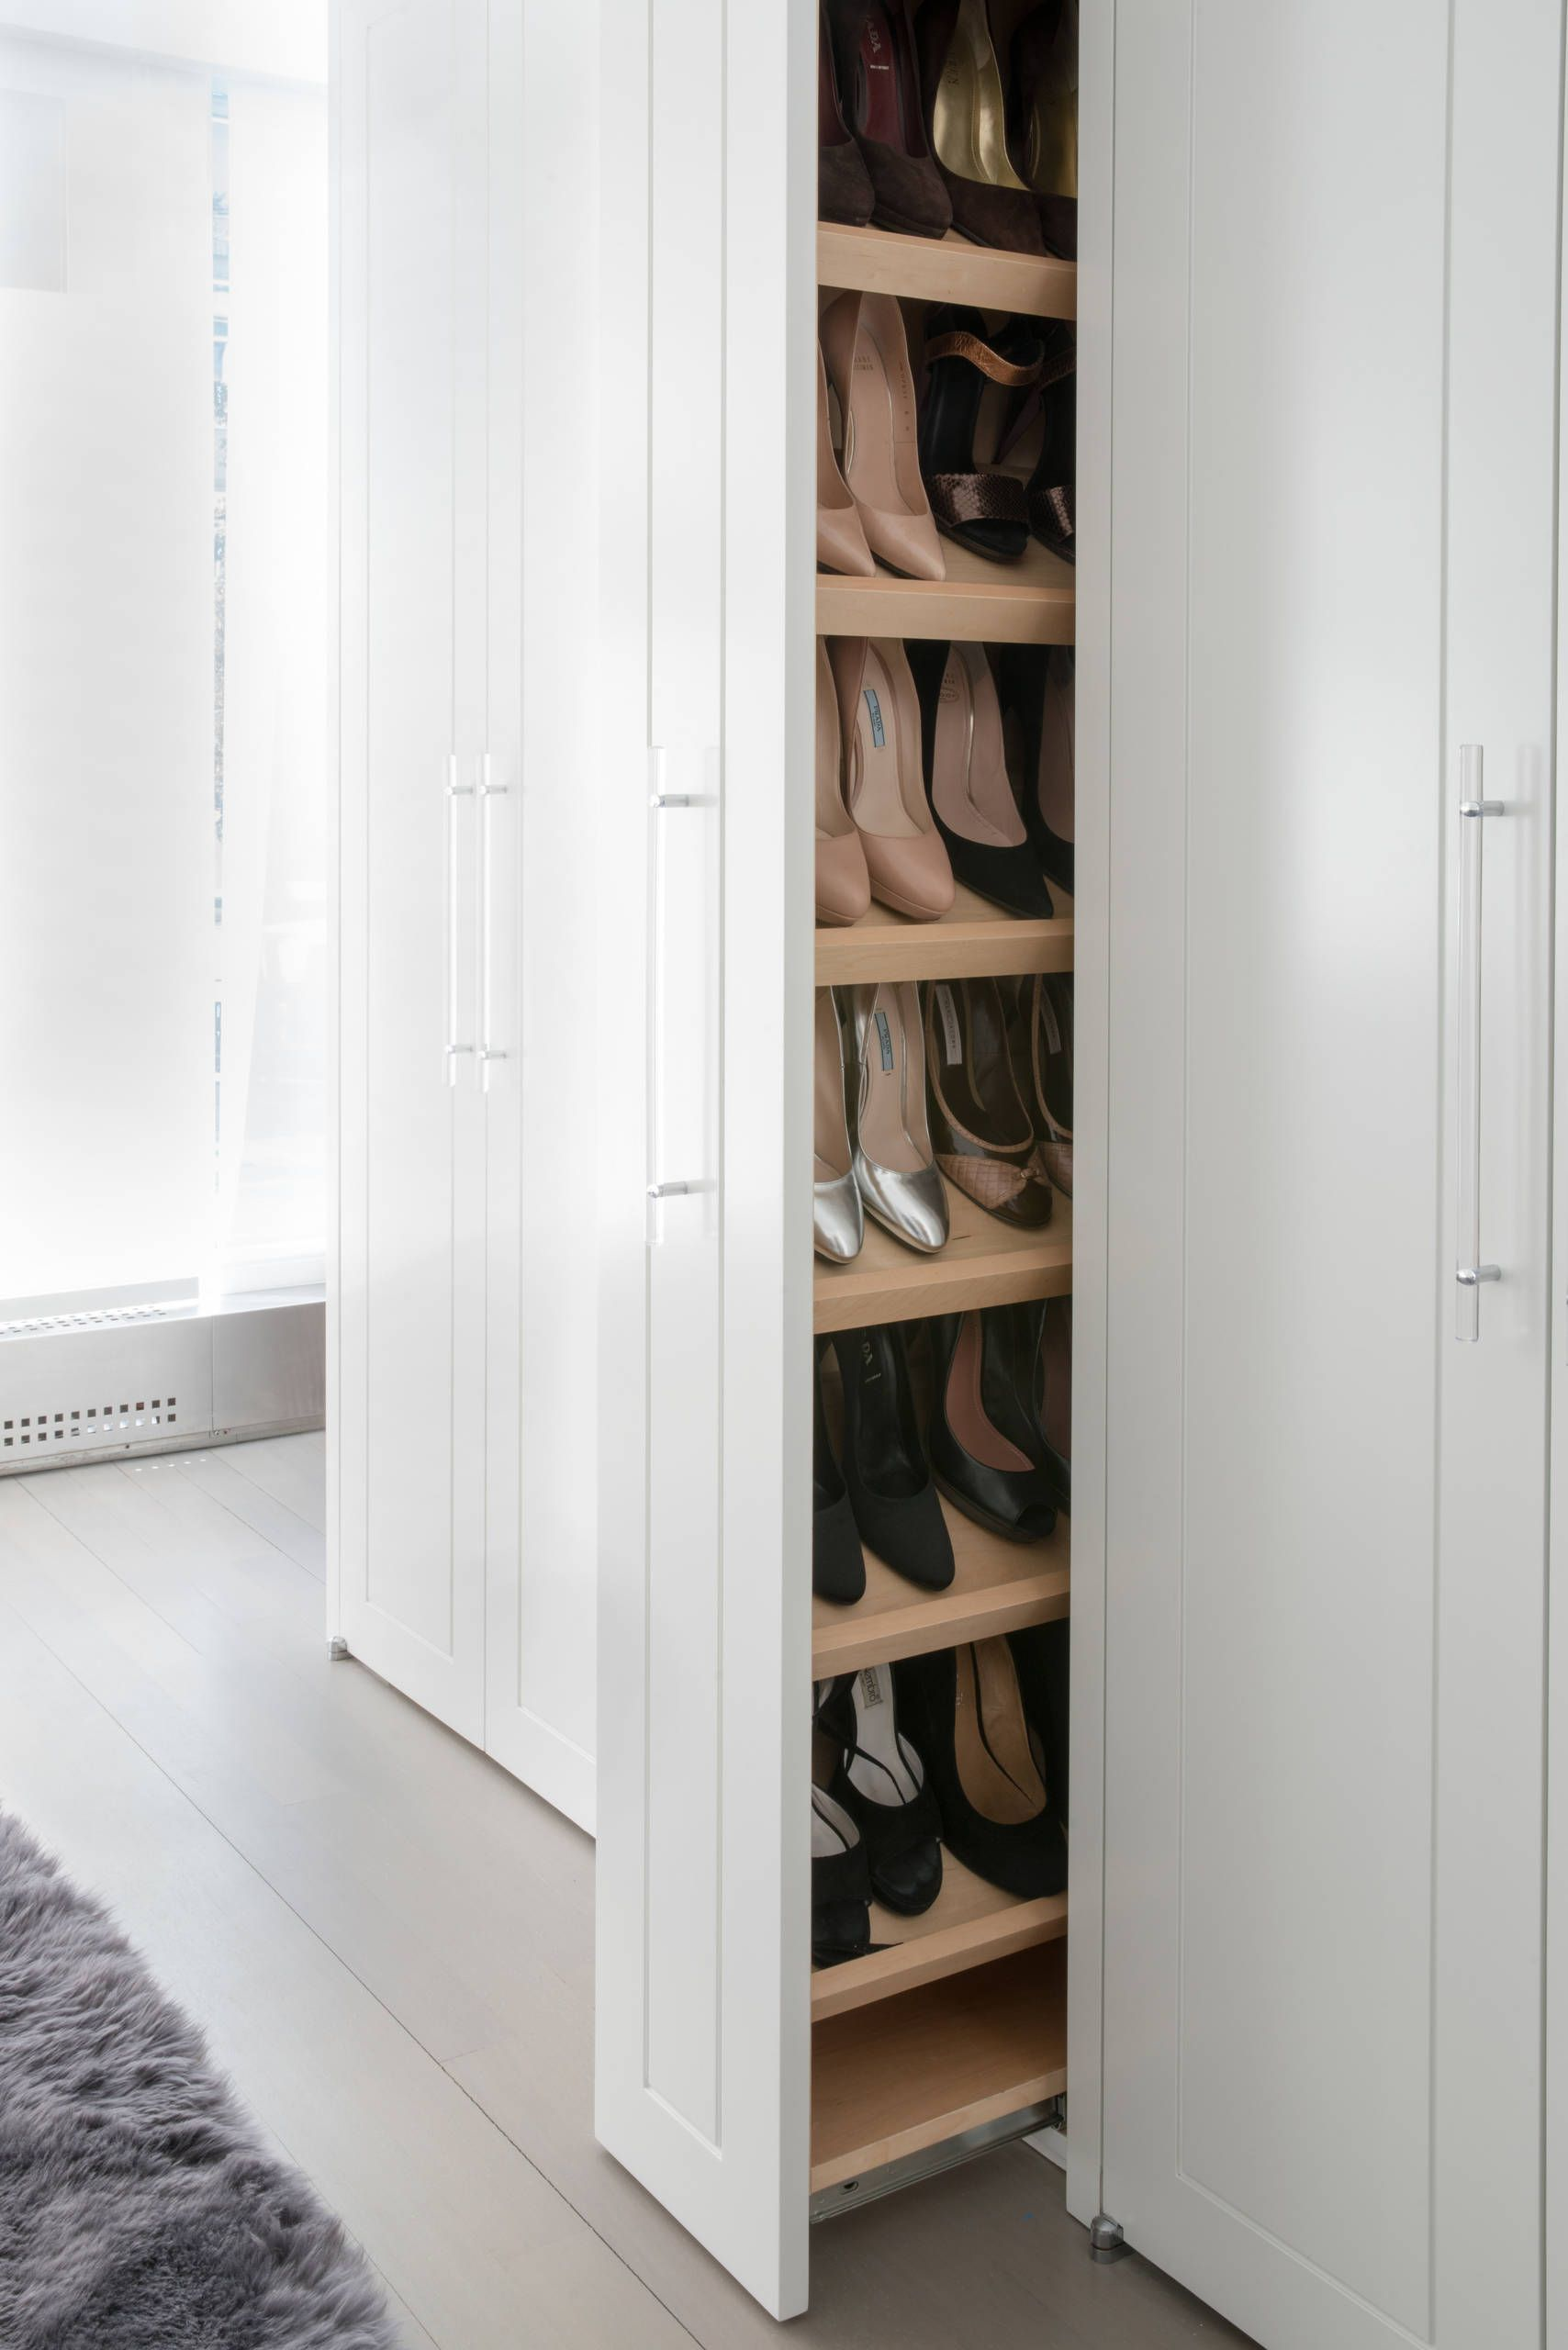 #Closets #WalkIn #Wonderful 19 Wonderful Walk-In Closets. #home #homedesign #homedesignideas #homedecorideas #homedecor